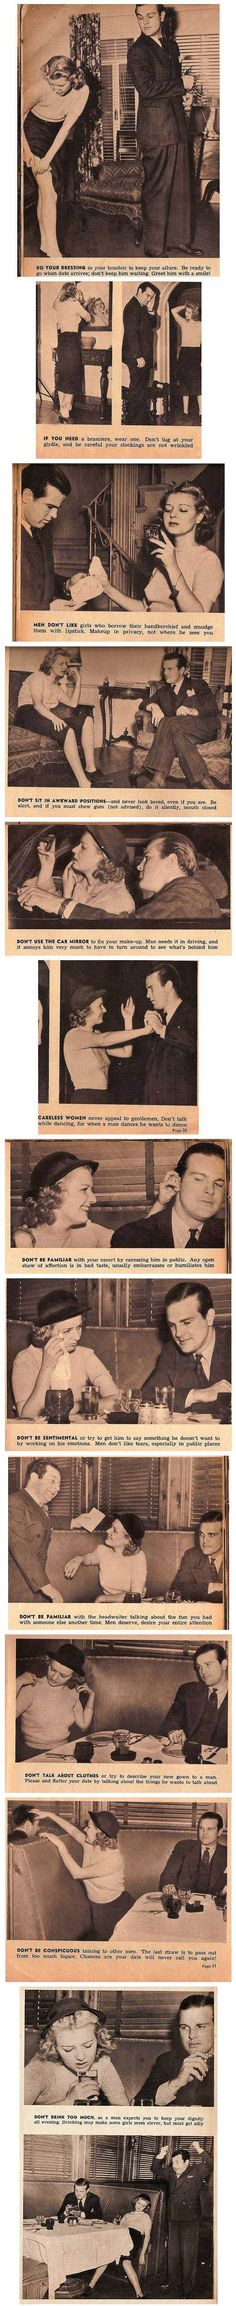 dating advice from the 1950s  Wow...I would have died alone in the 1950s.